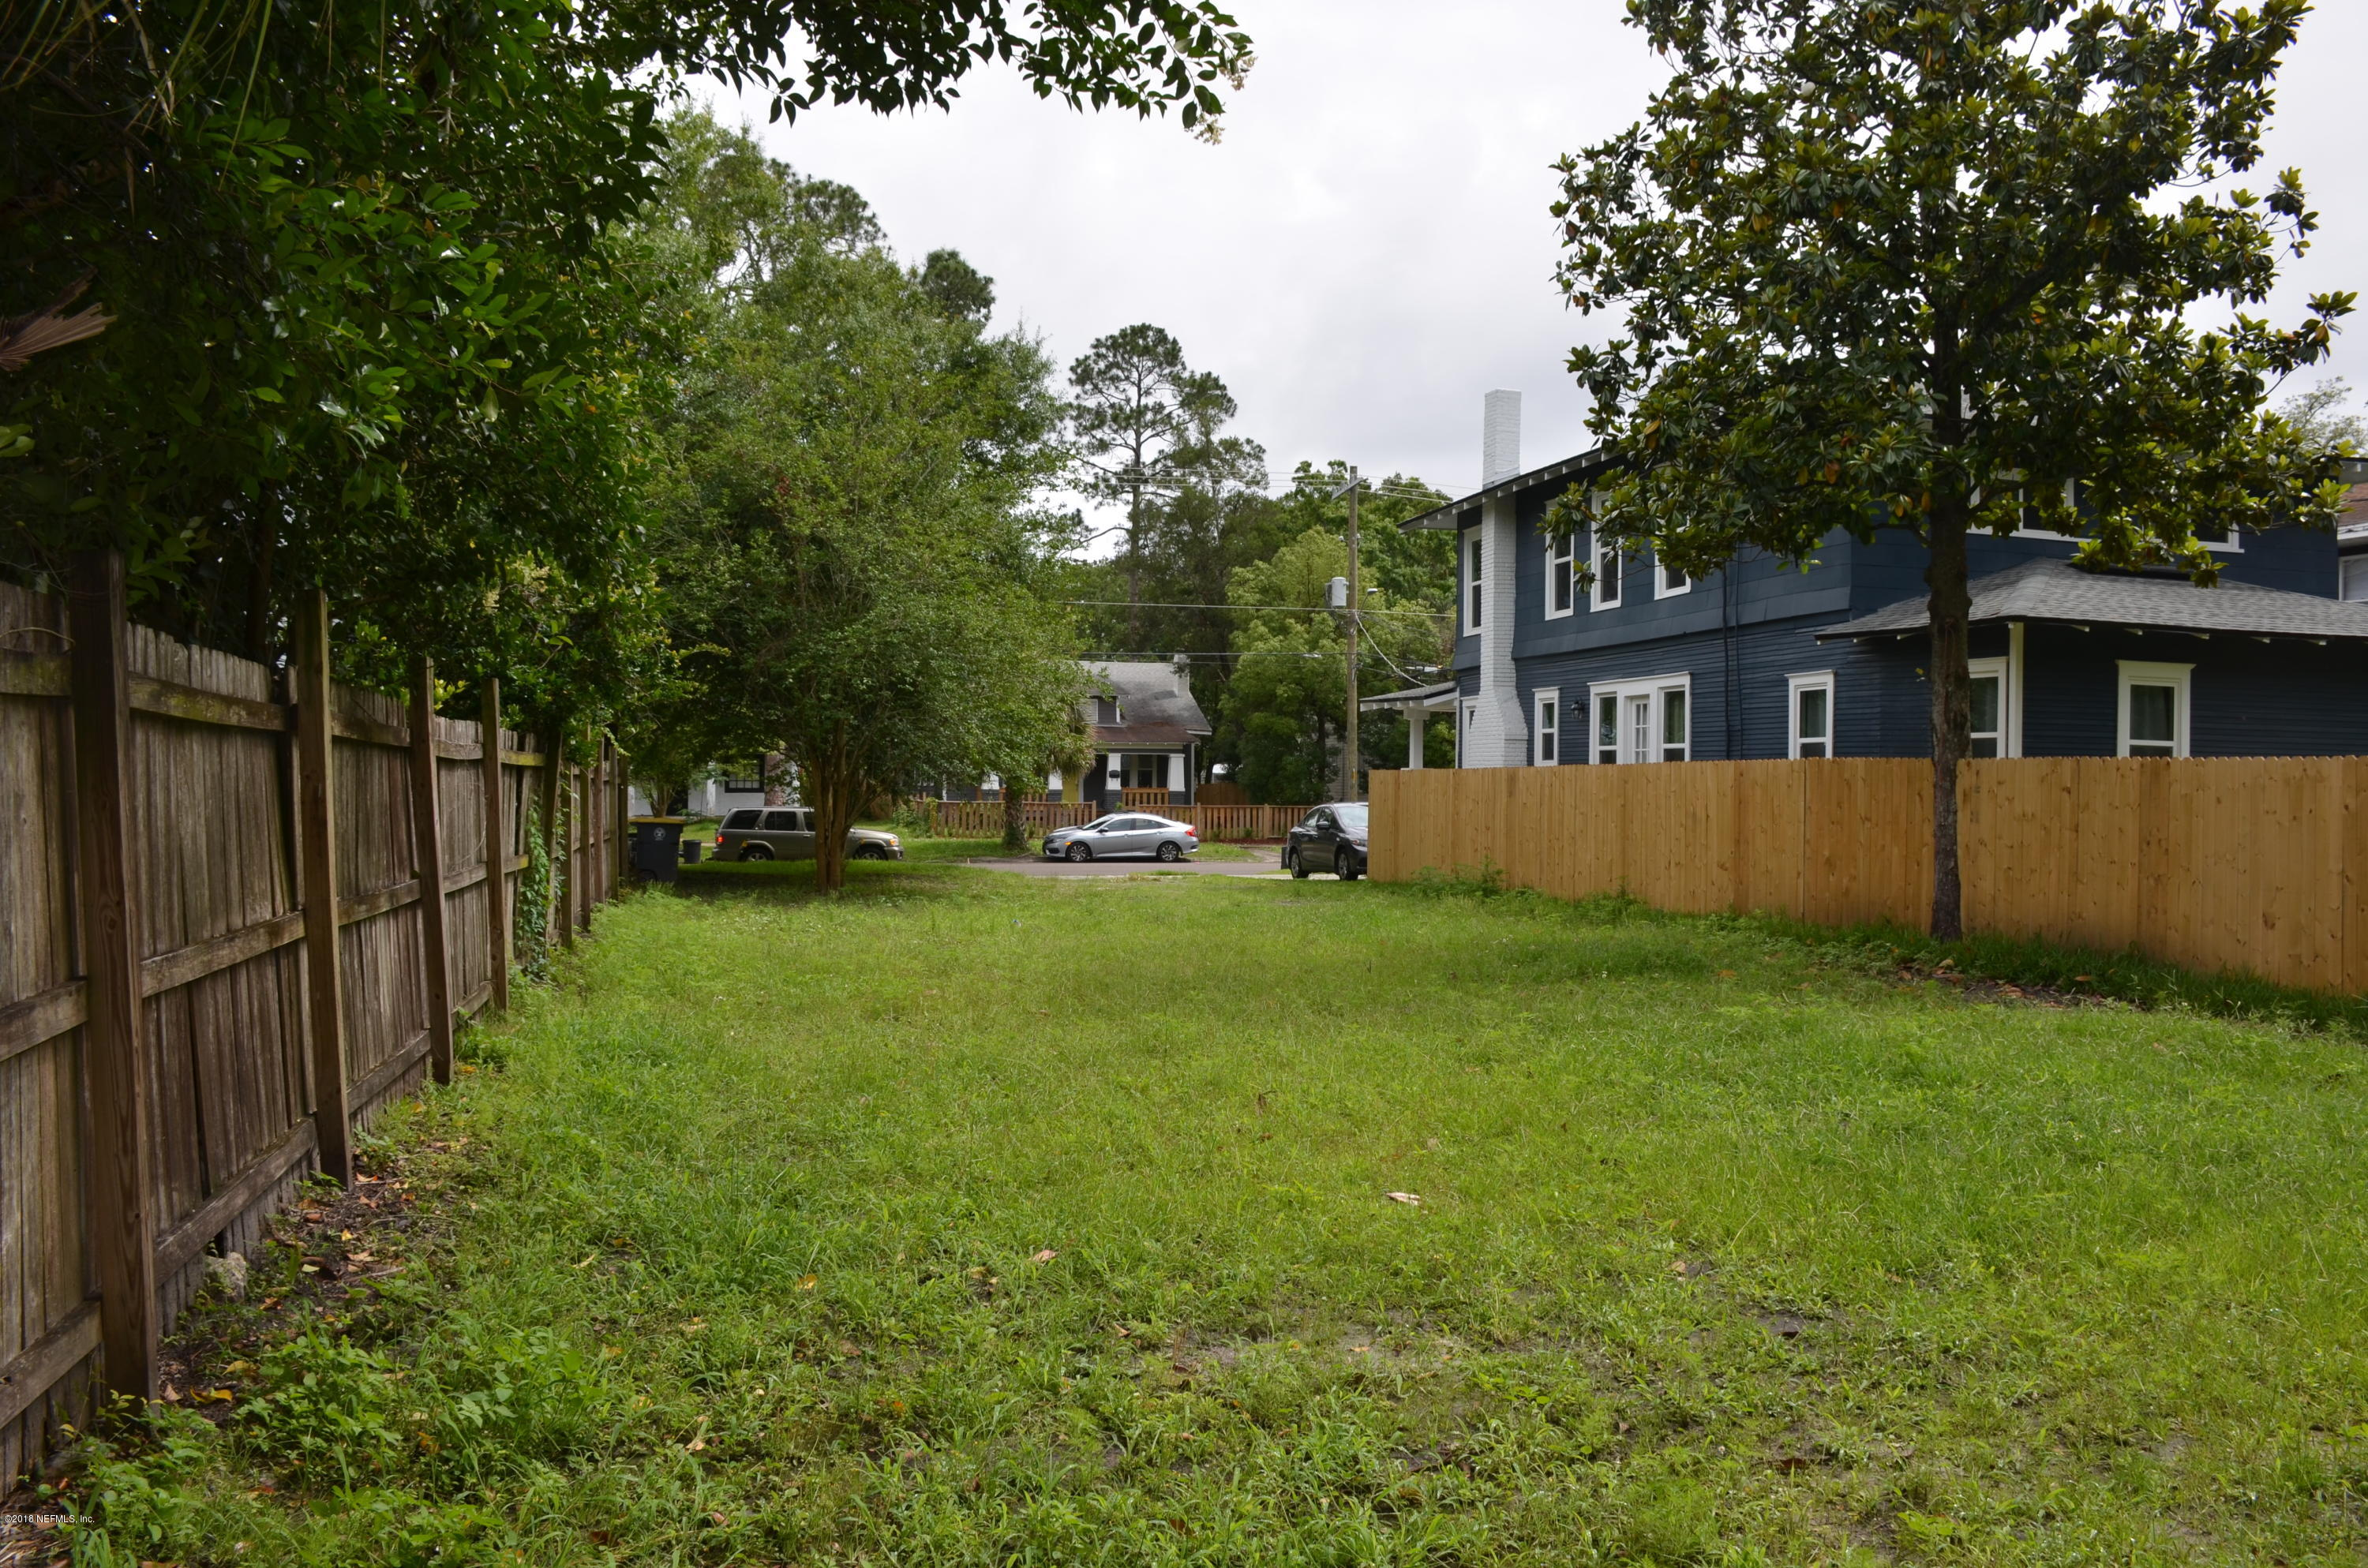 0 POST, JACKSONVILLE, FLORIDA 32205, ,Vacant land,For sale,POST,937925